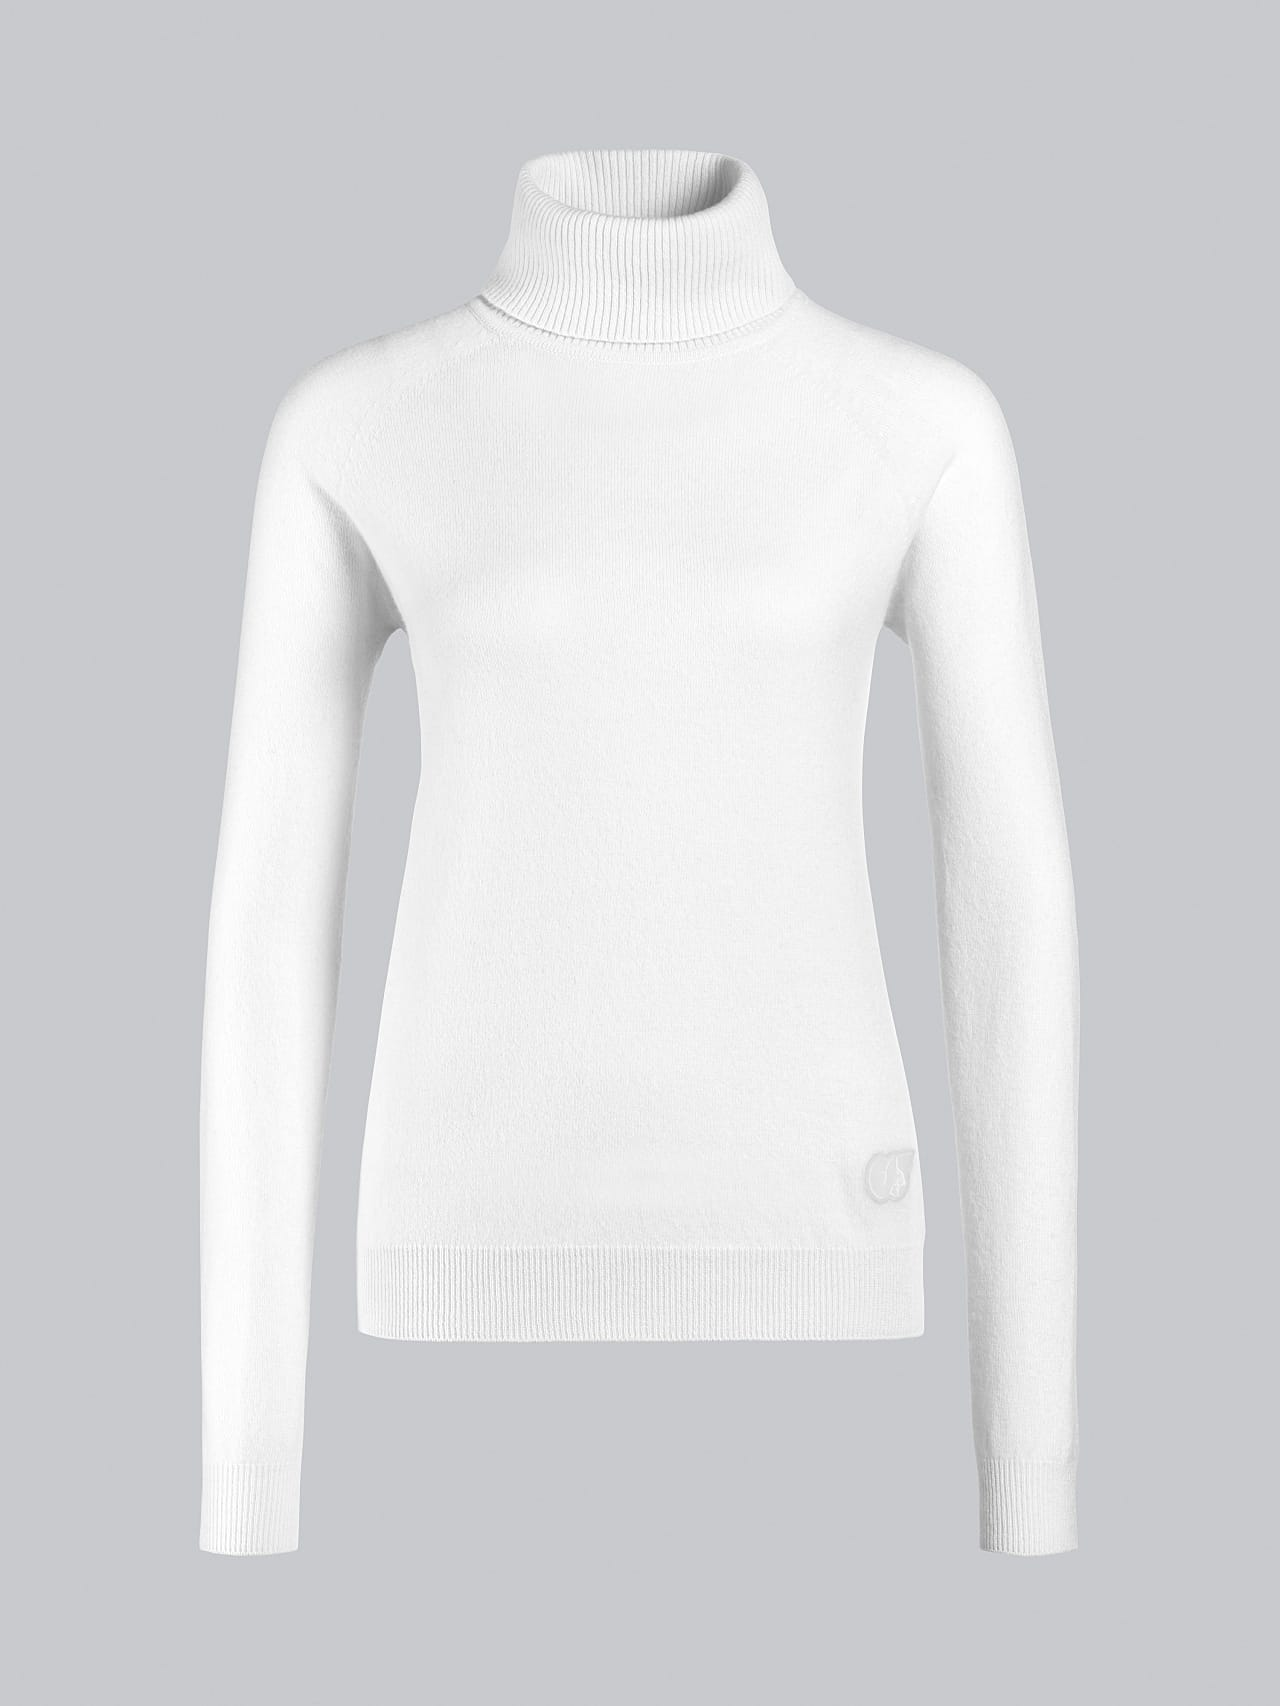 FLAMY V1.Y5.02 Seamless 3D Knit Merino-Cashmere Turtle Neck offwhite Back Alpha Tauri